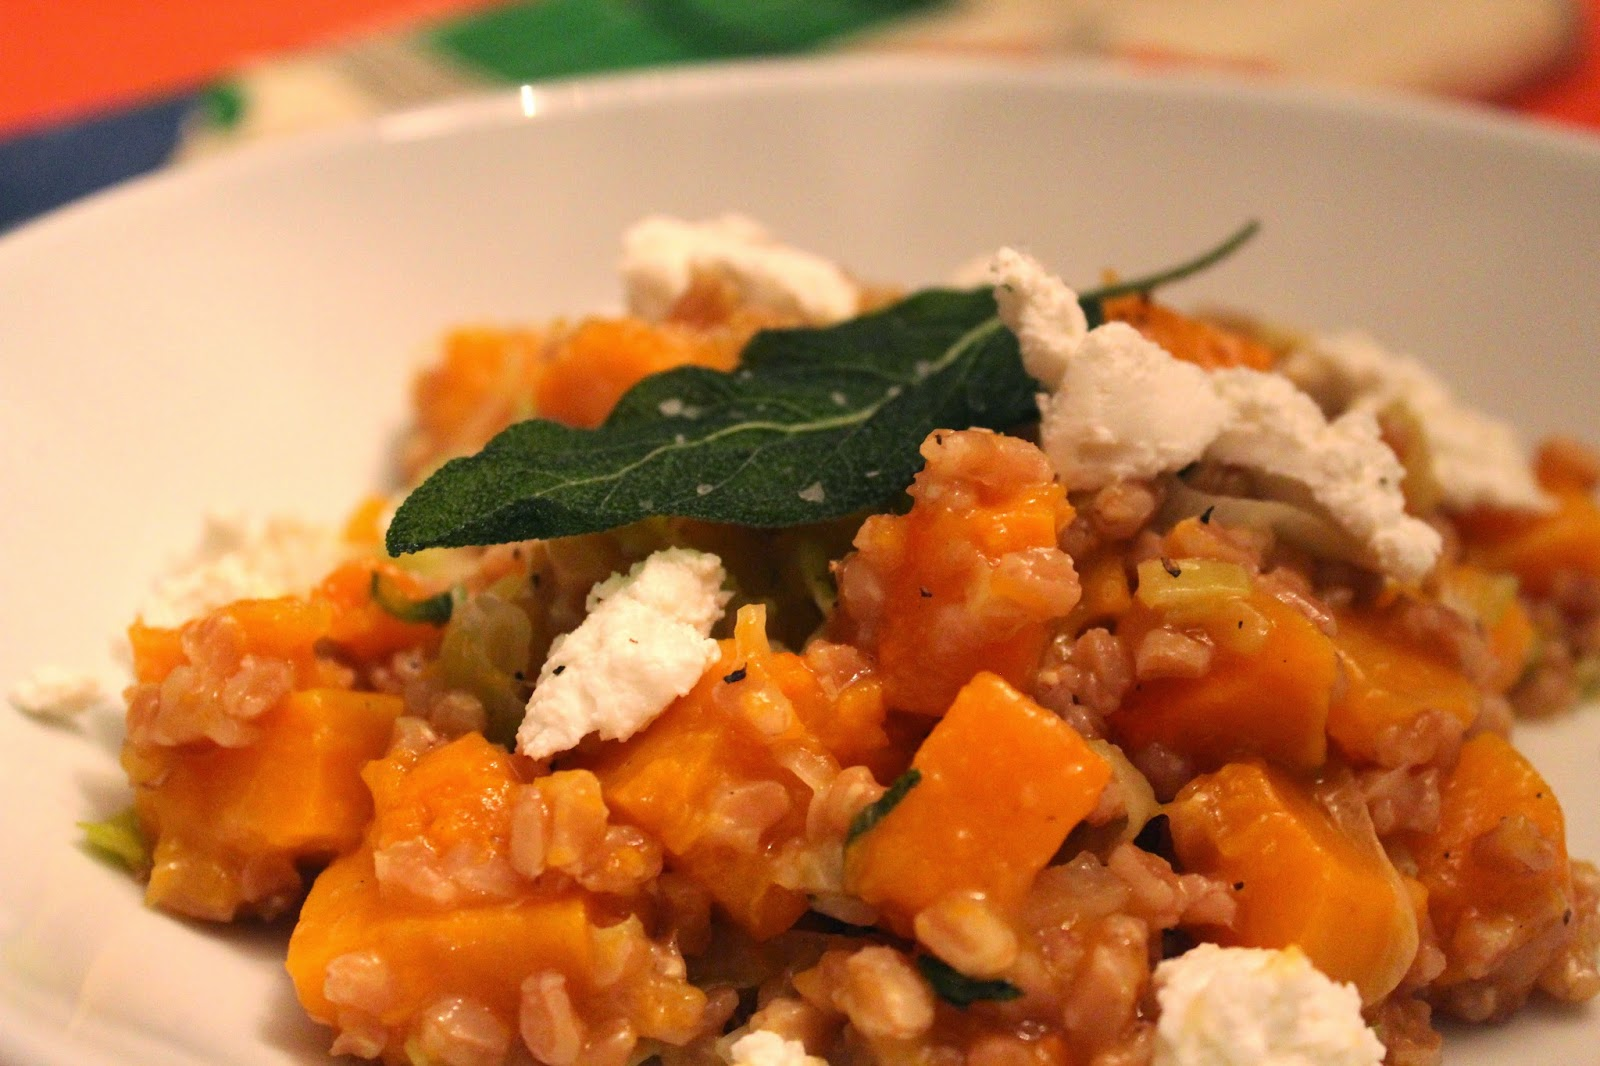 Farrotto with butternut squash, sage, and goat cheese